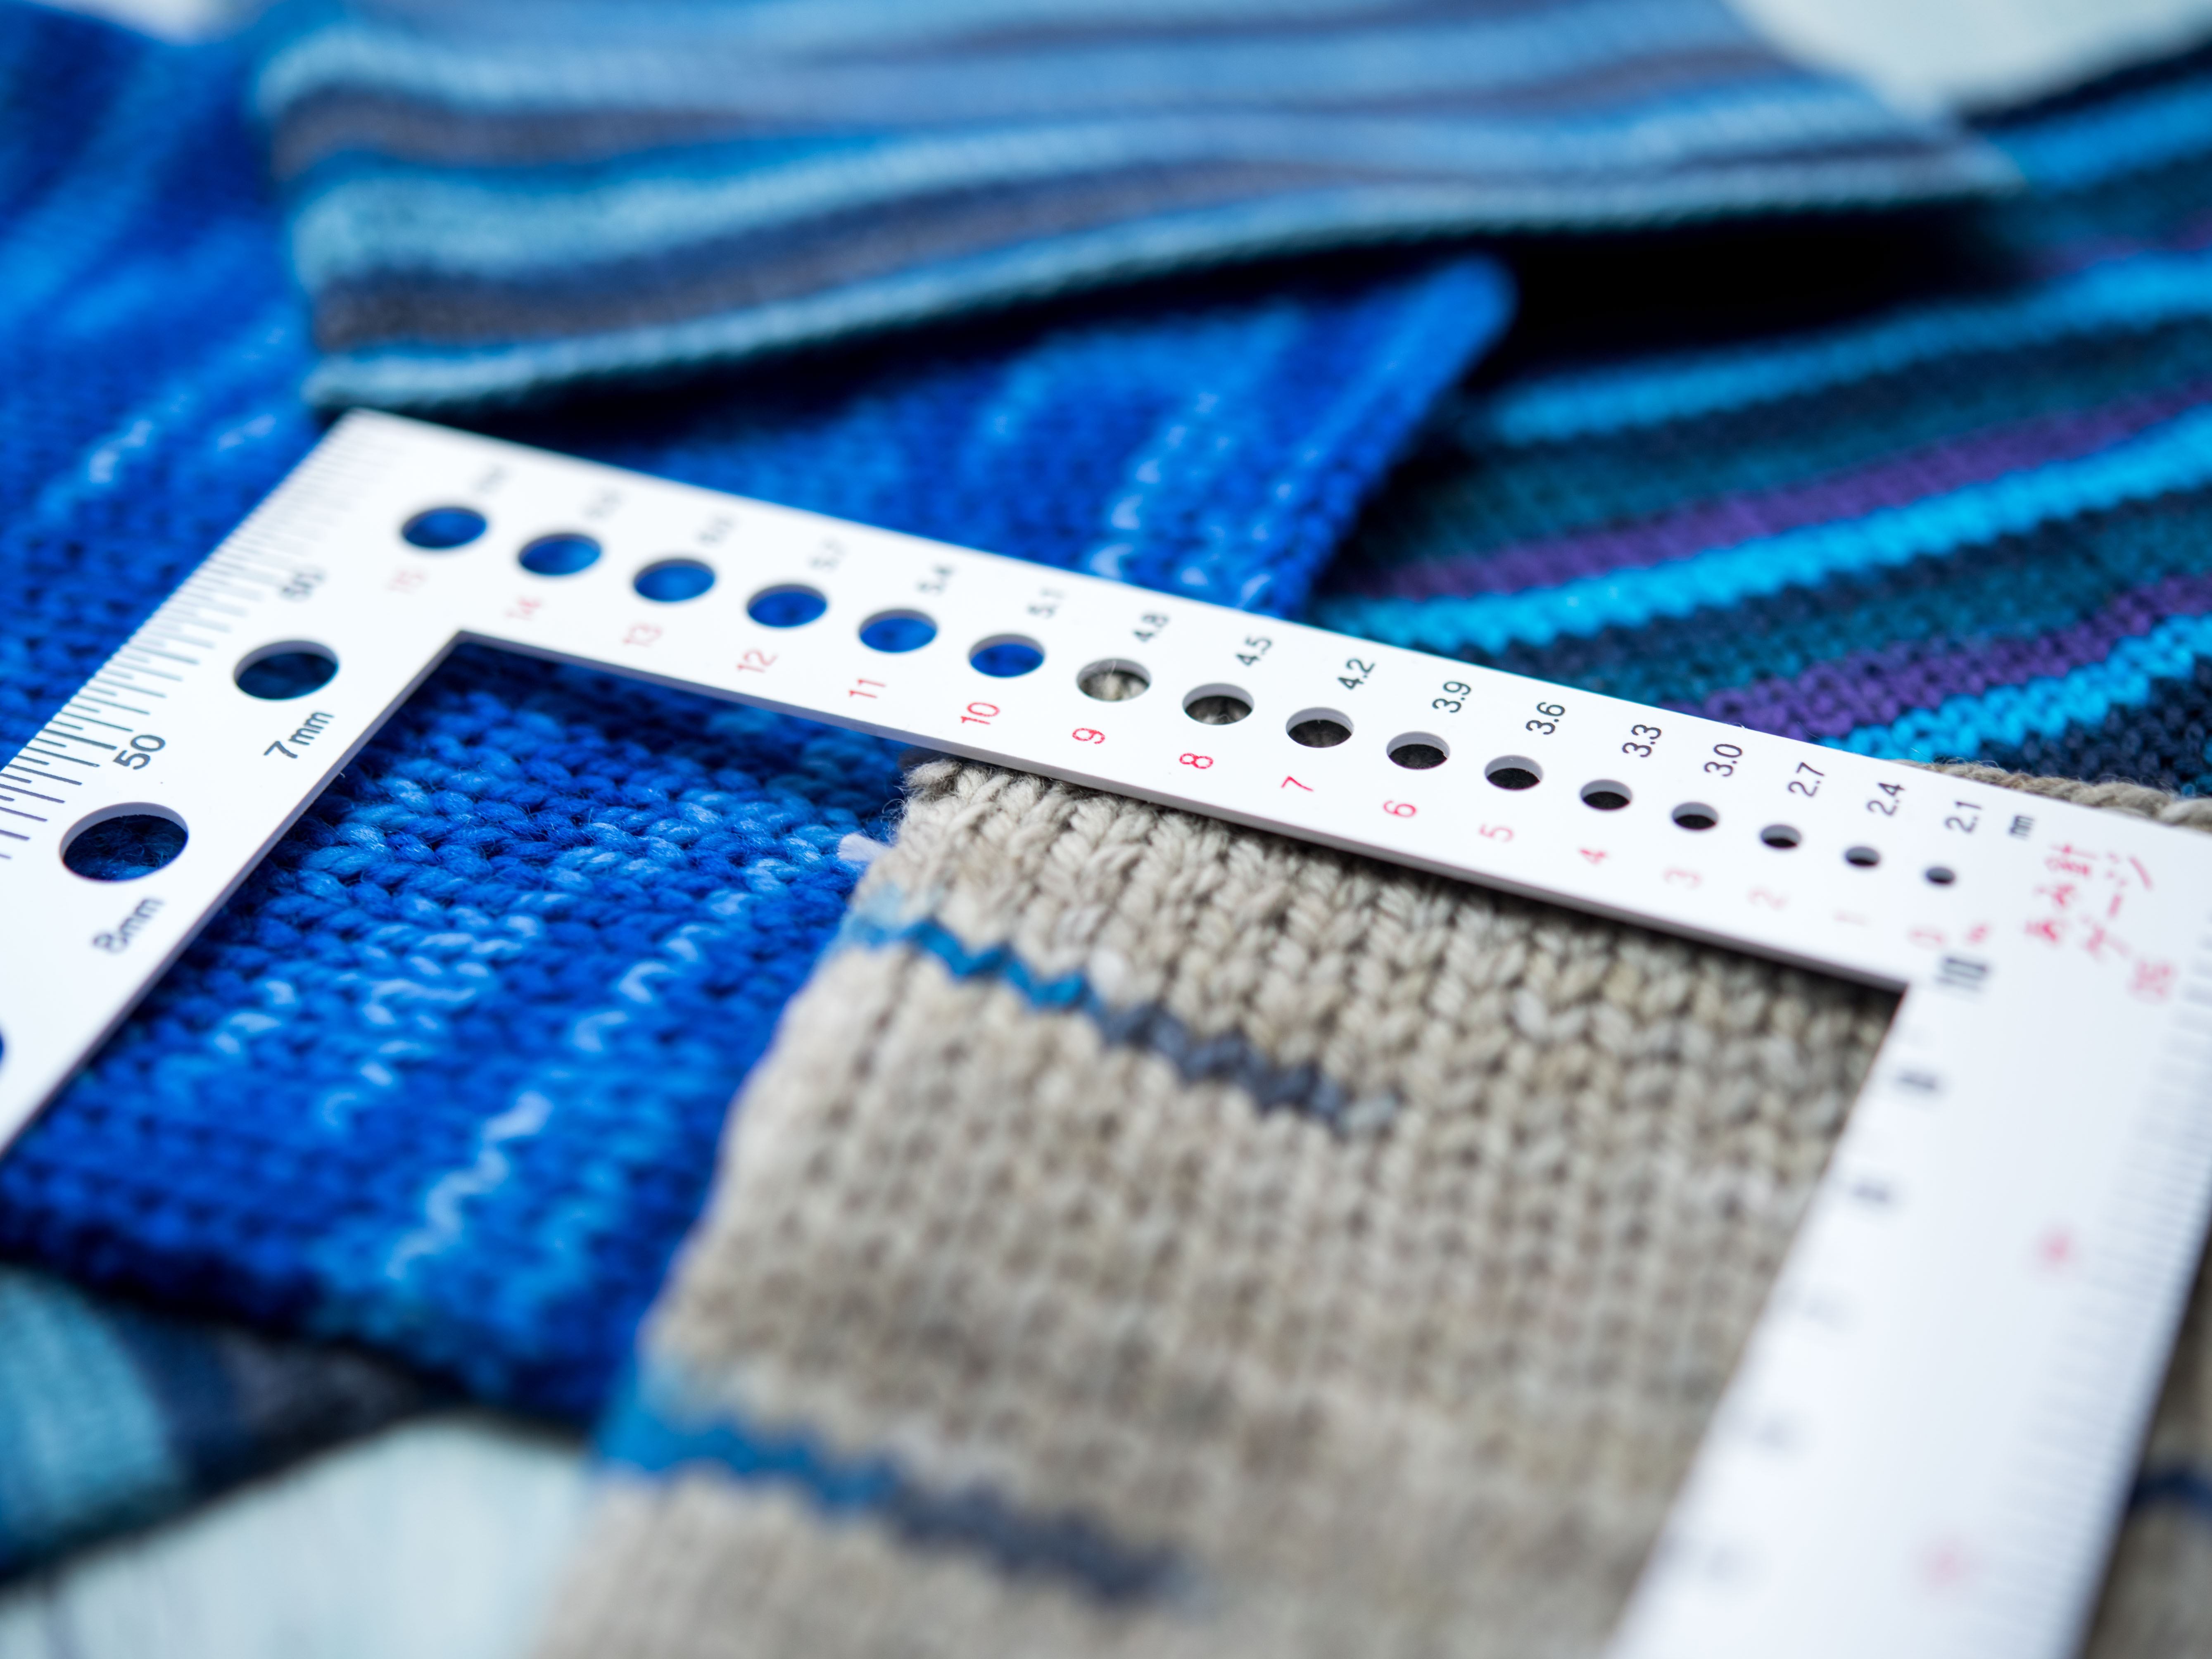 Knit Swatches and Gauge Ruler